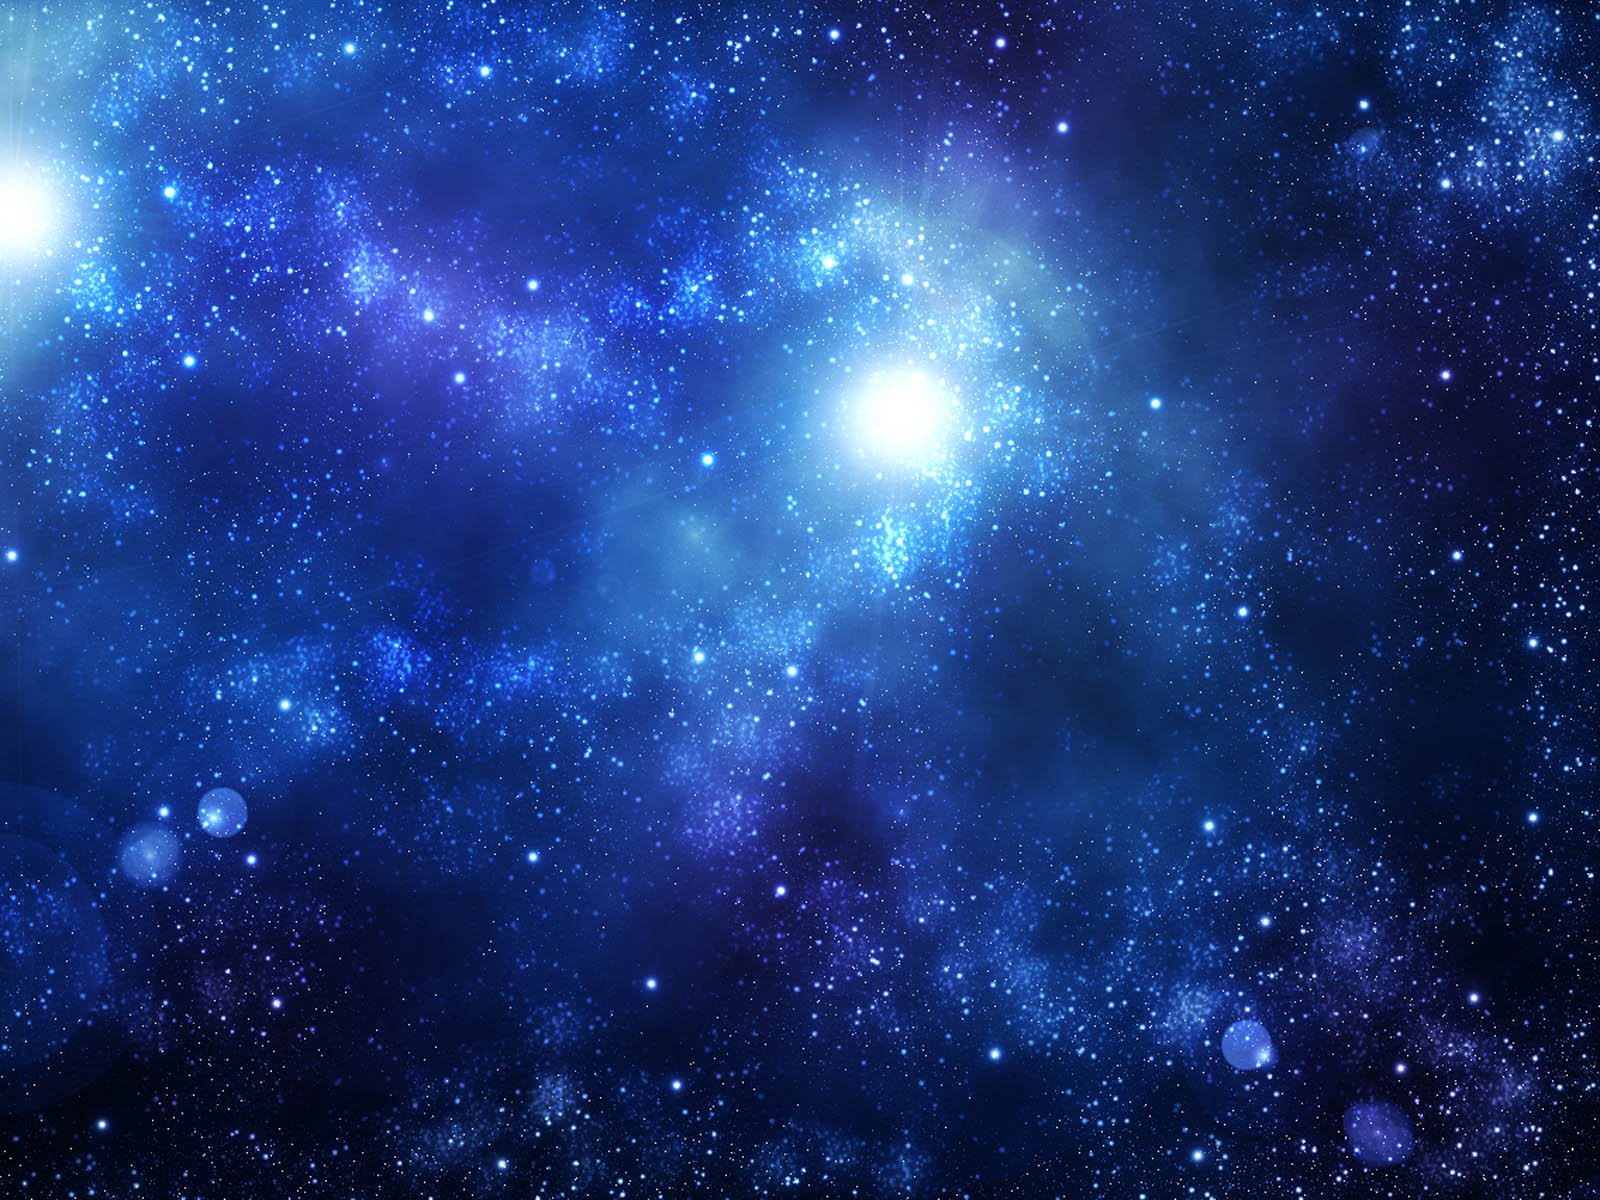 wallpaper.wiki Download Andromeda Galaxy Image PIC WPC003339 Free Download Andromeda Galaxy Background